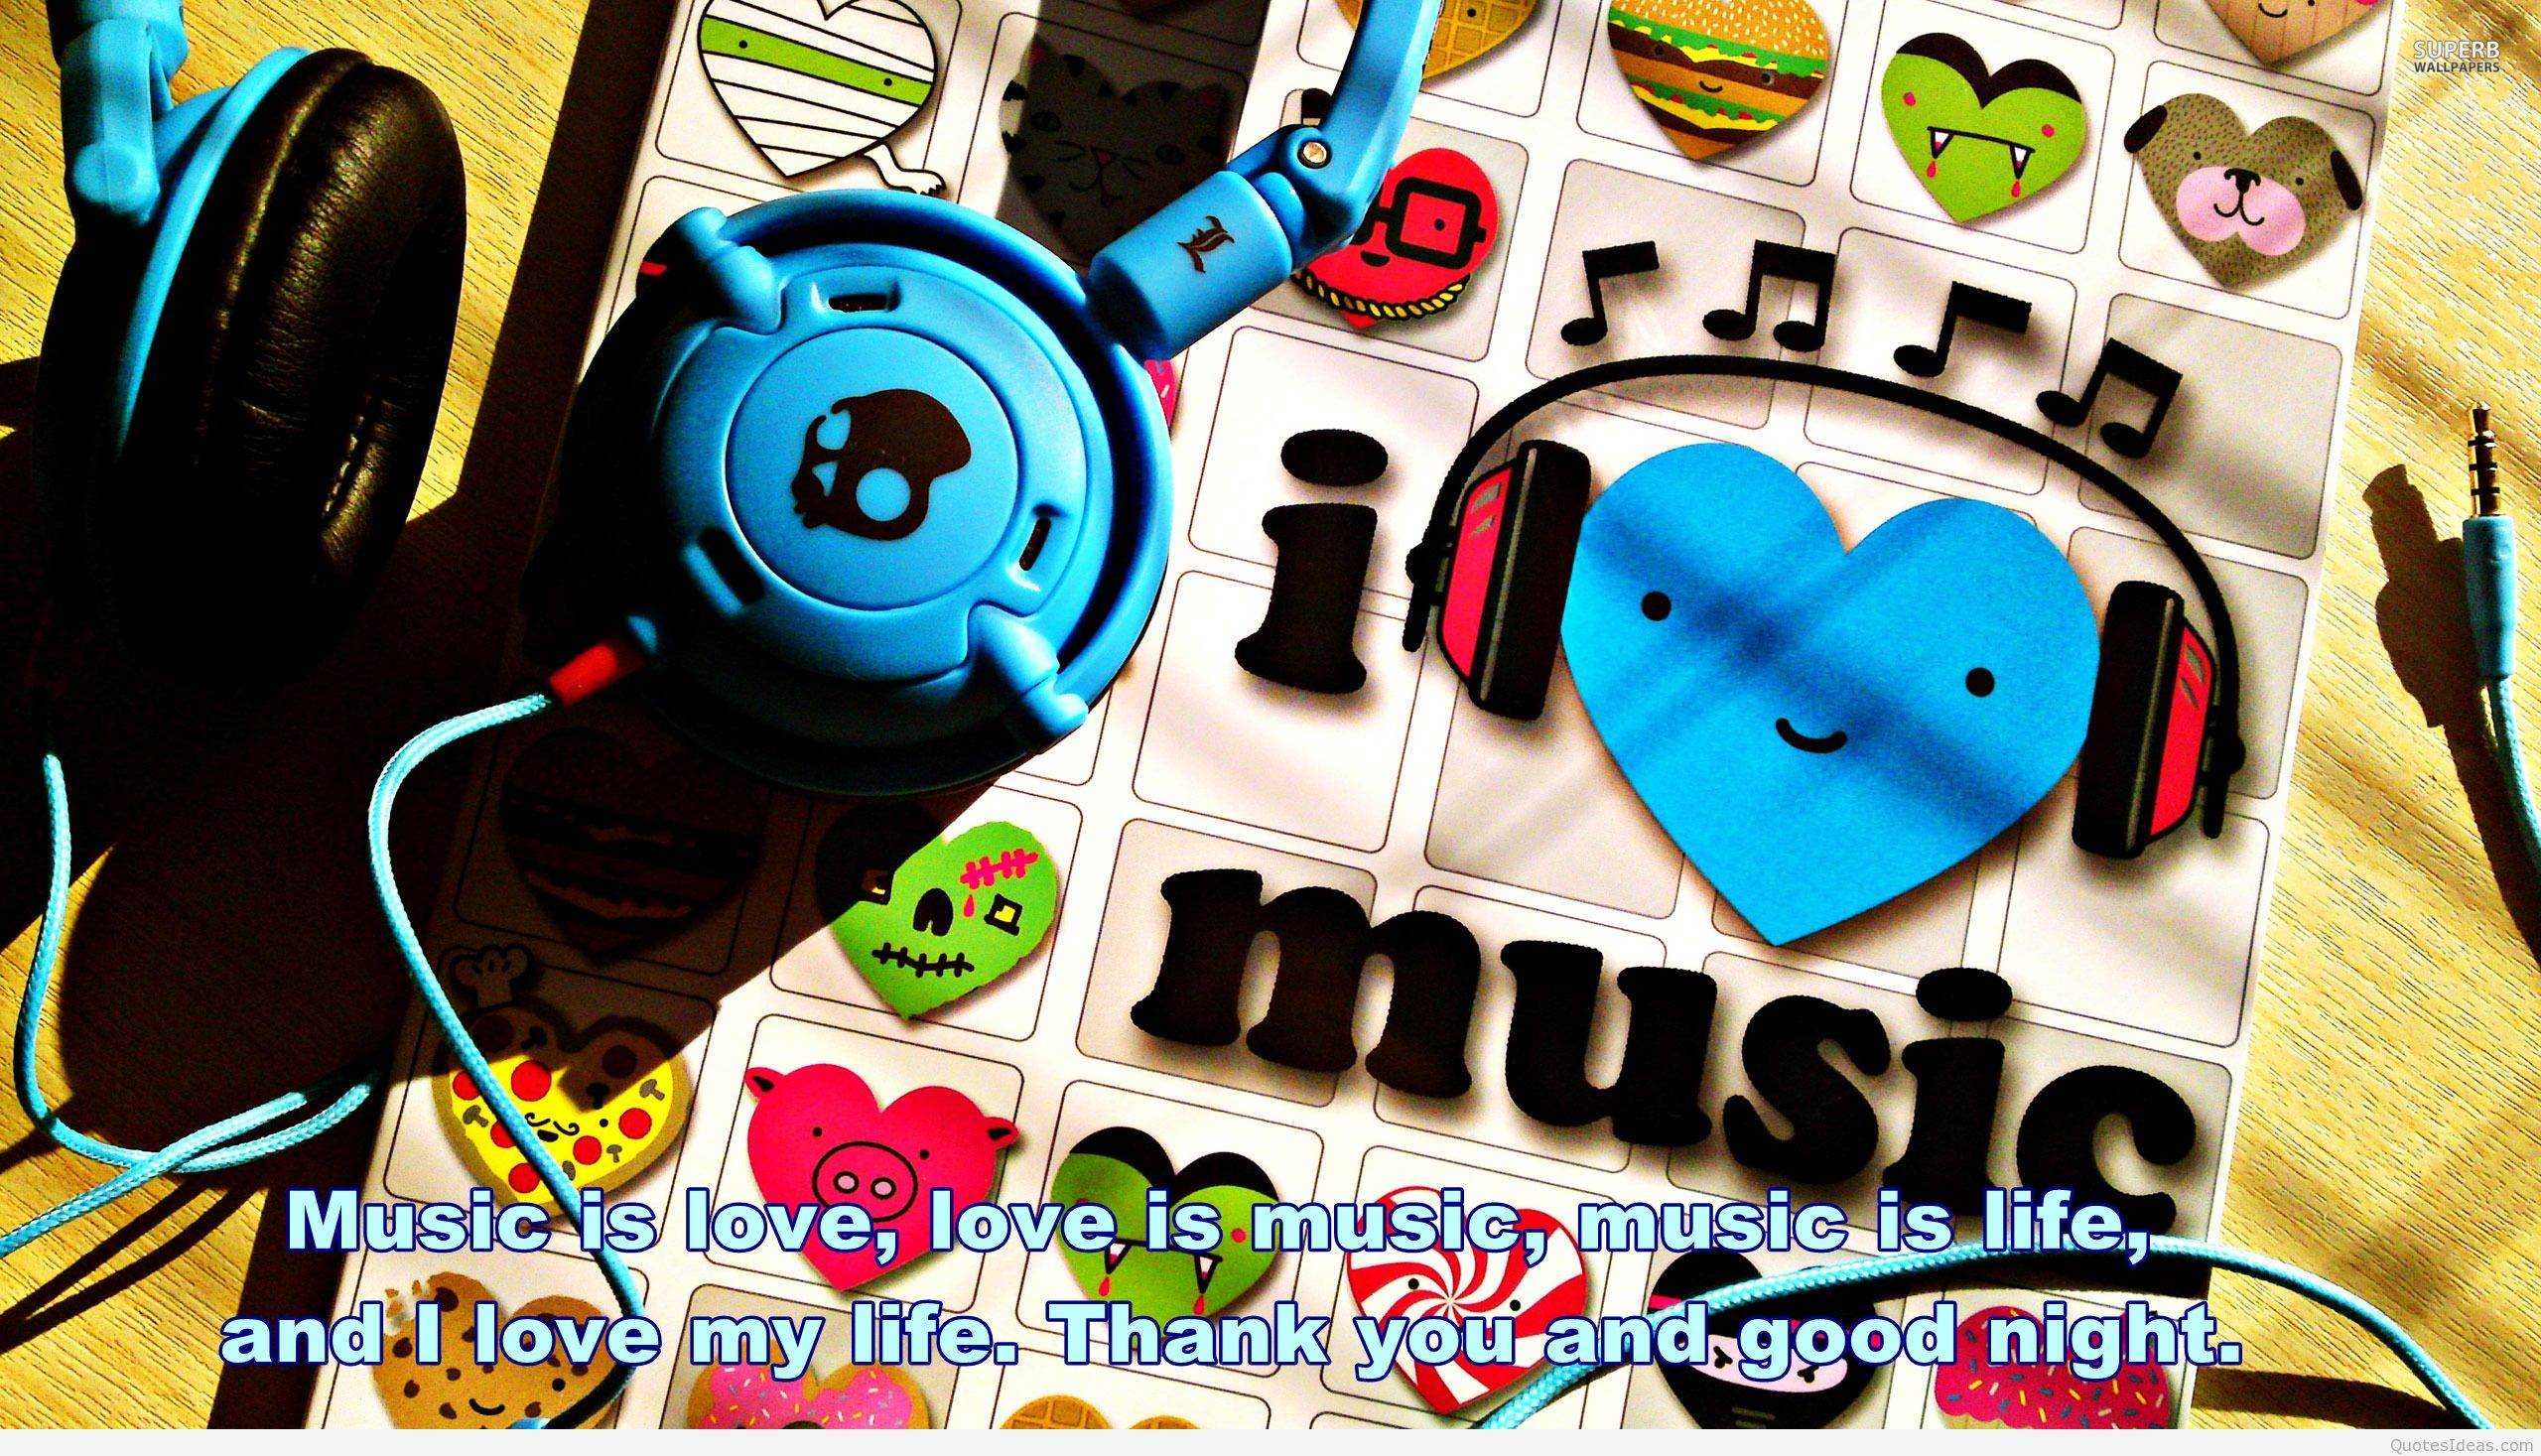 Music Photo Quote - Love Music Wallpaper Hd For Desktop , HD Wallpaper & Backgrounds